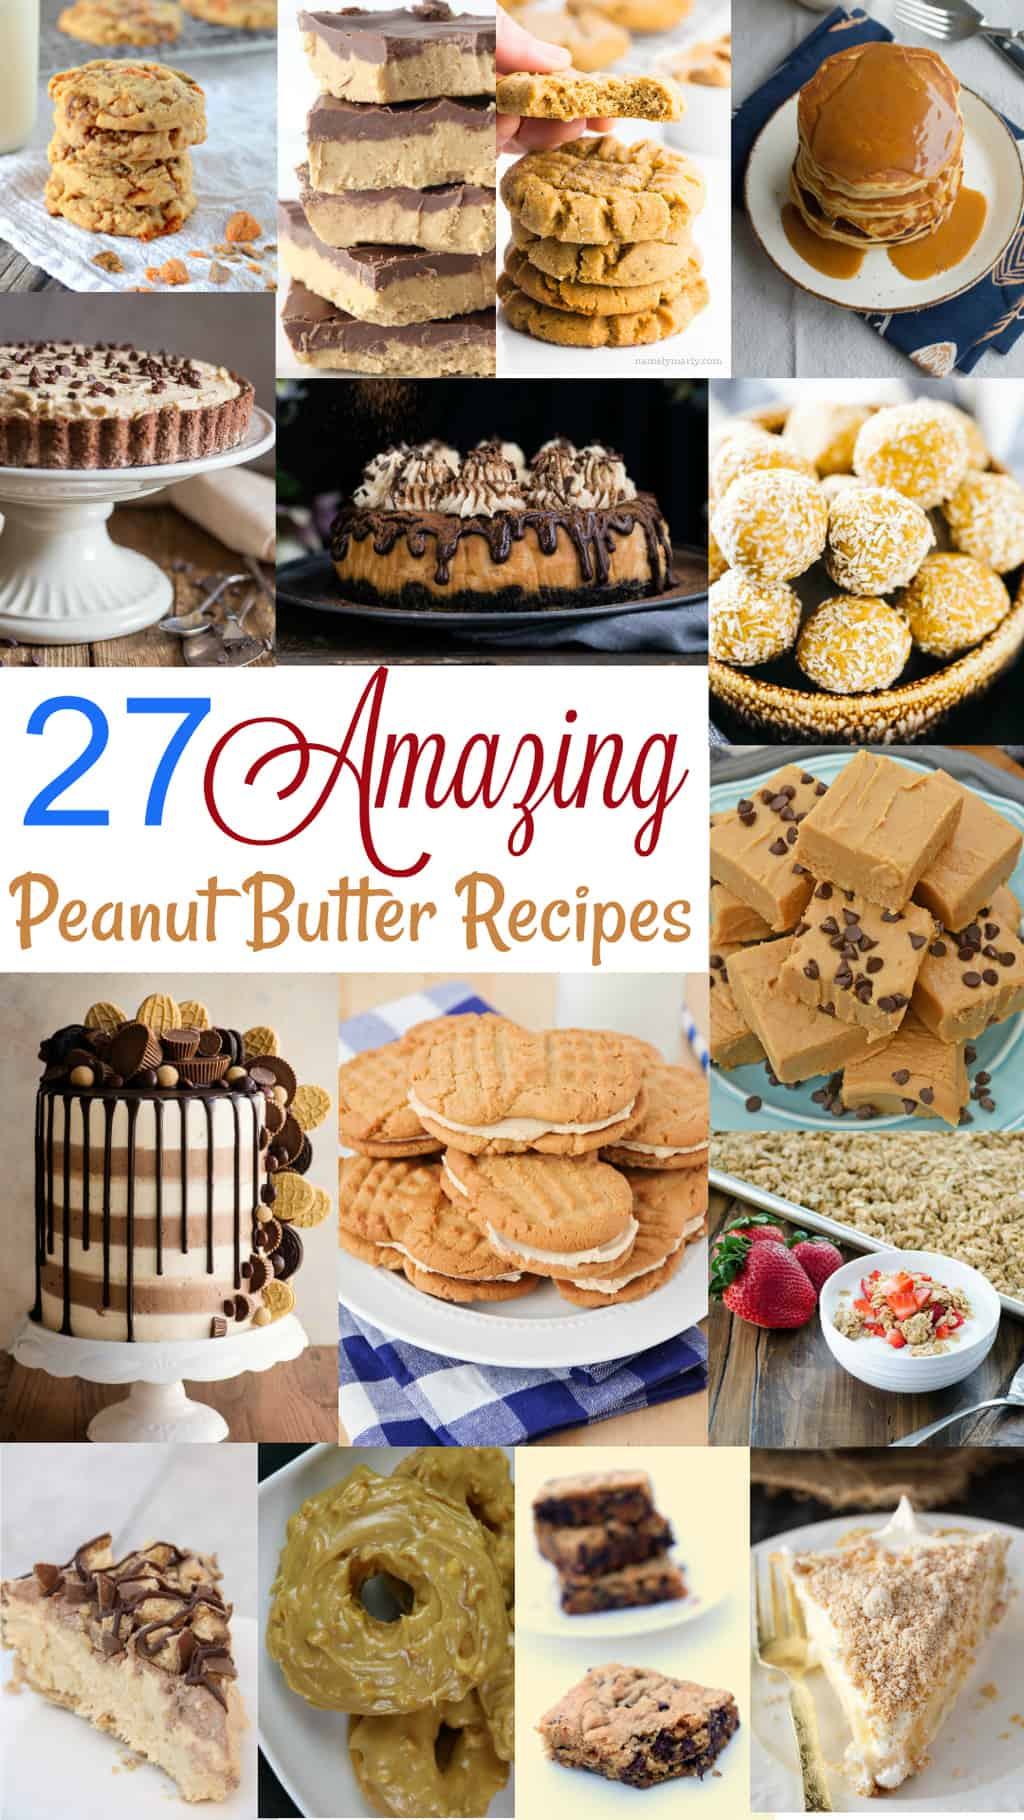 Are you a peanut butter lover?! Then this post's for you! 27 amazing peanut butter recipes, coming right up!